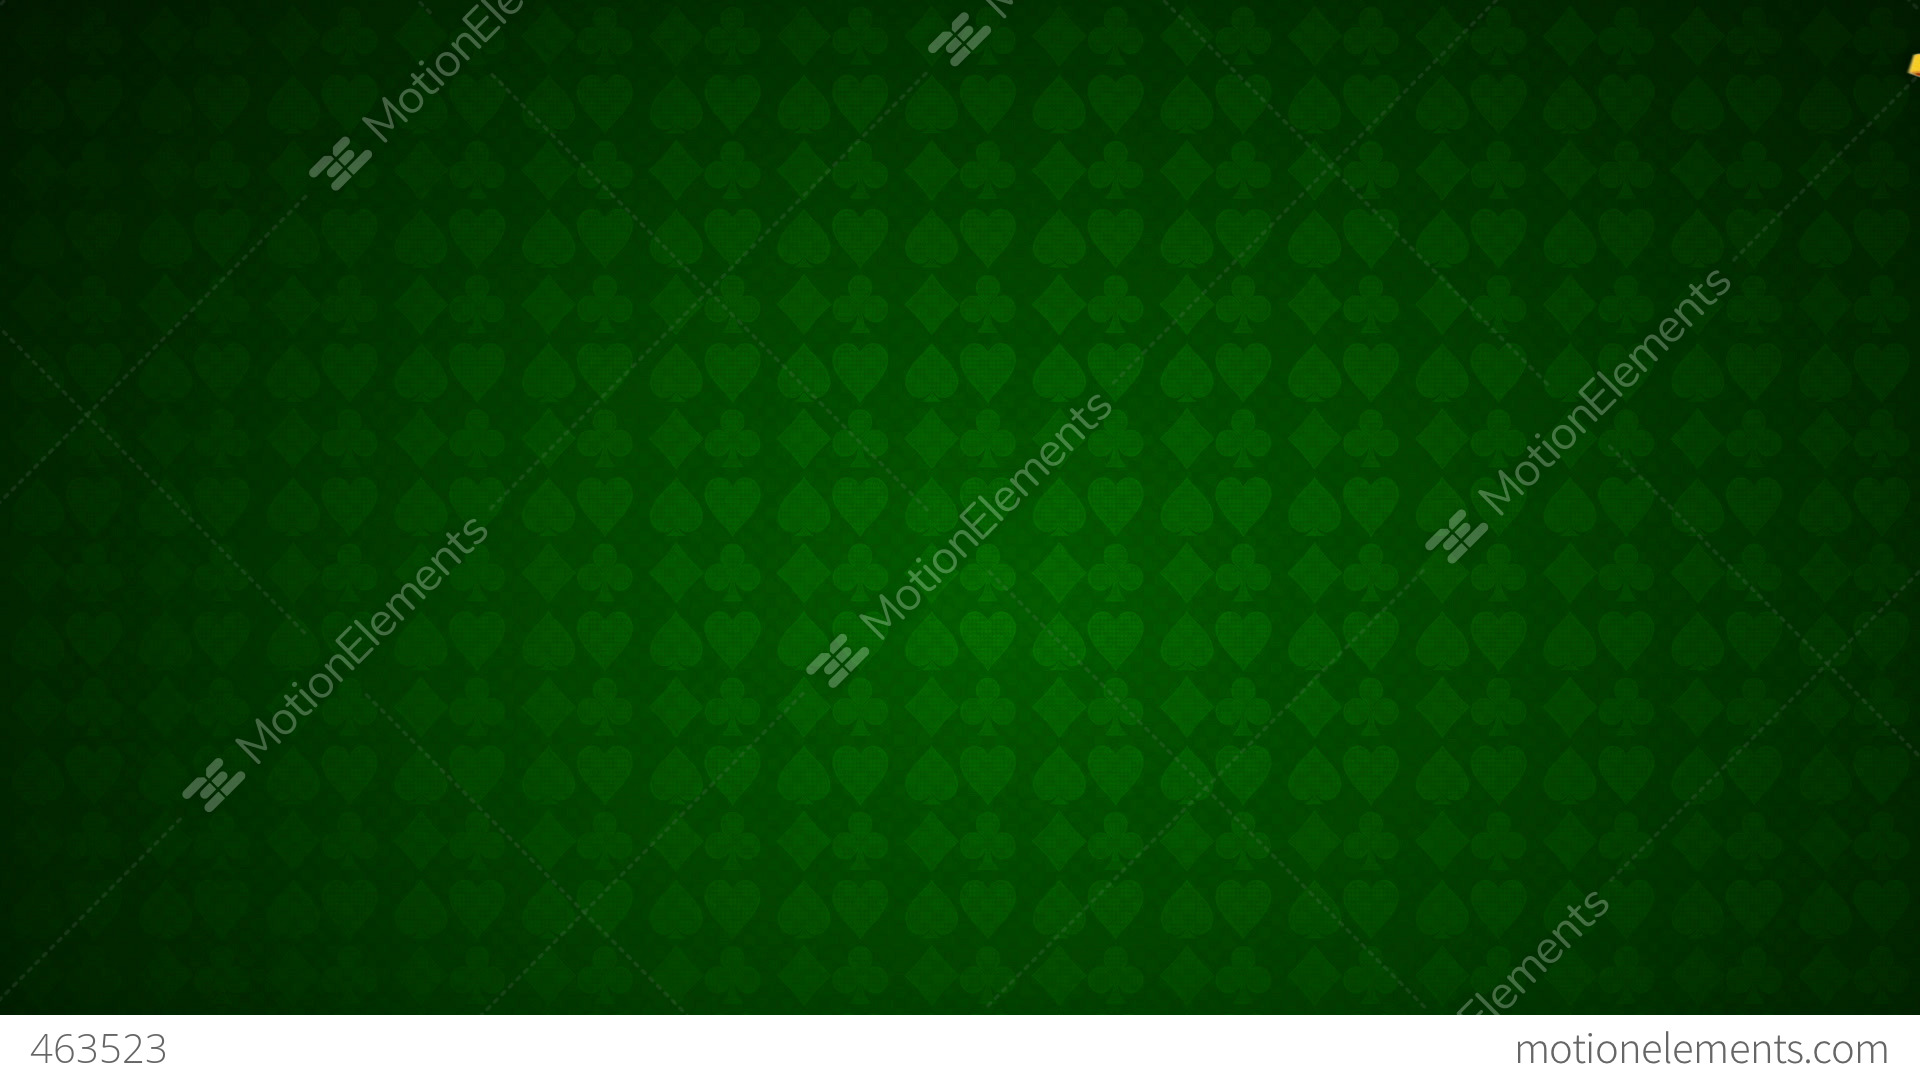 animation hd green diamond motion video footage over flow suits card stock textured with slow background